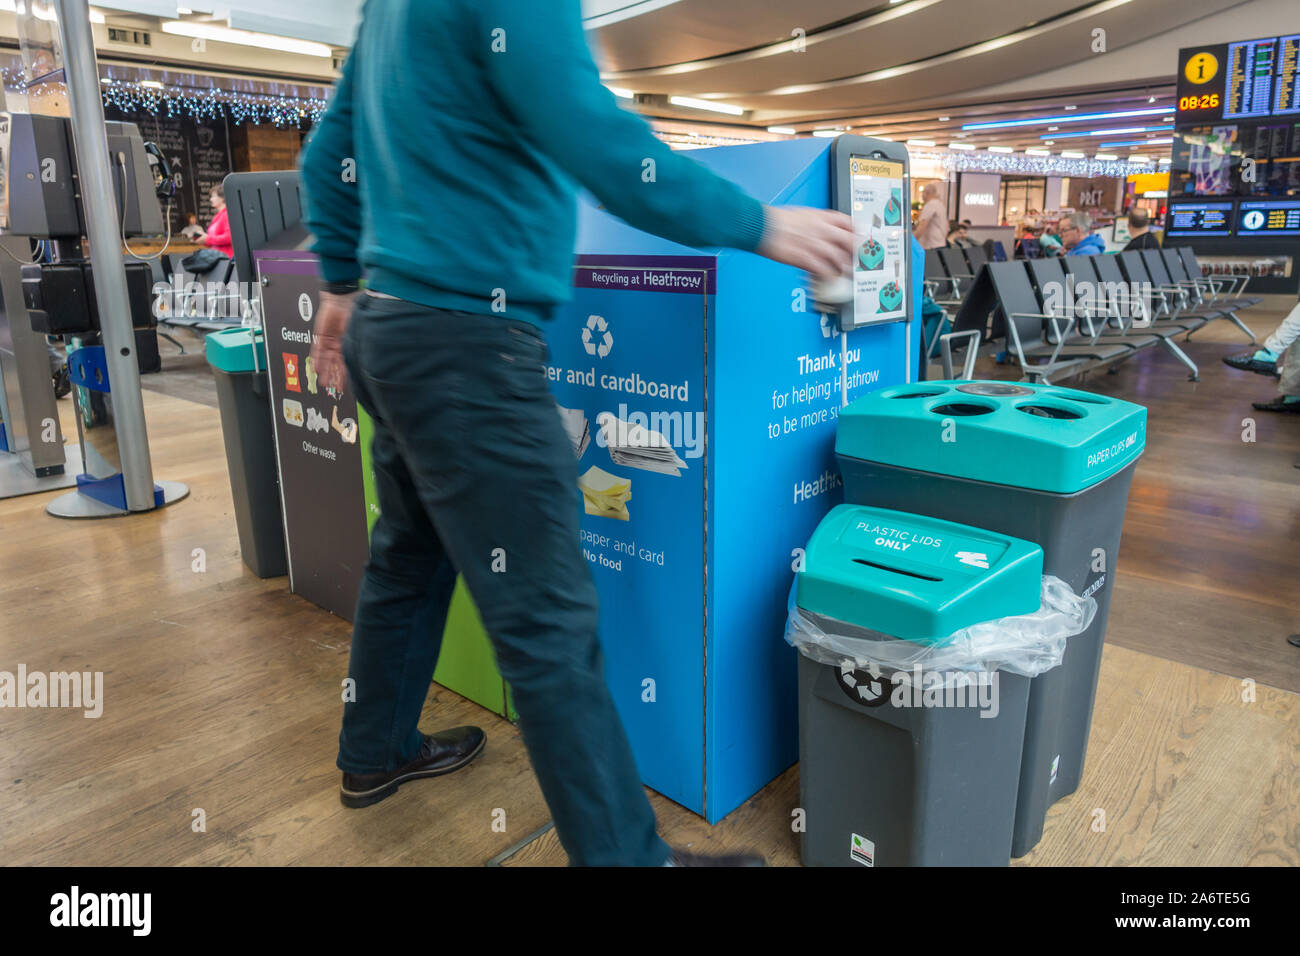 rubbish-bins-at-heathrow-airport-so-that-passengers-can-sort-their-rubbish-into-different-types-of-recycling-2A6TE5G.jpg